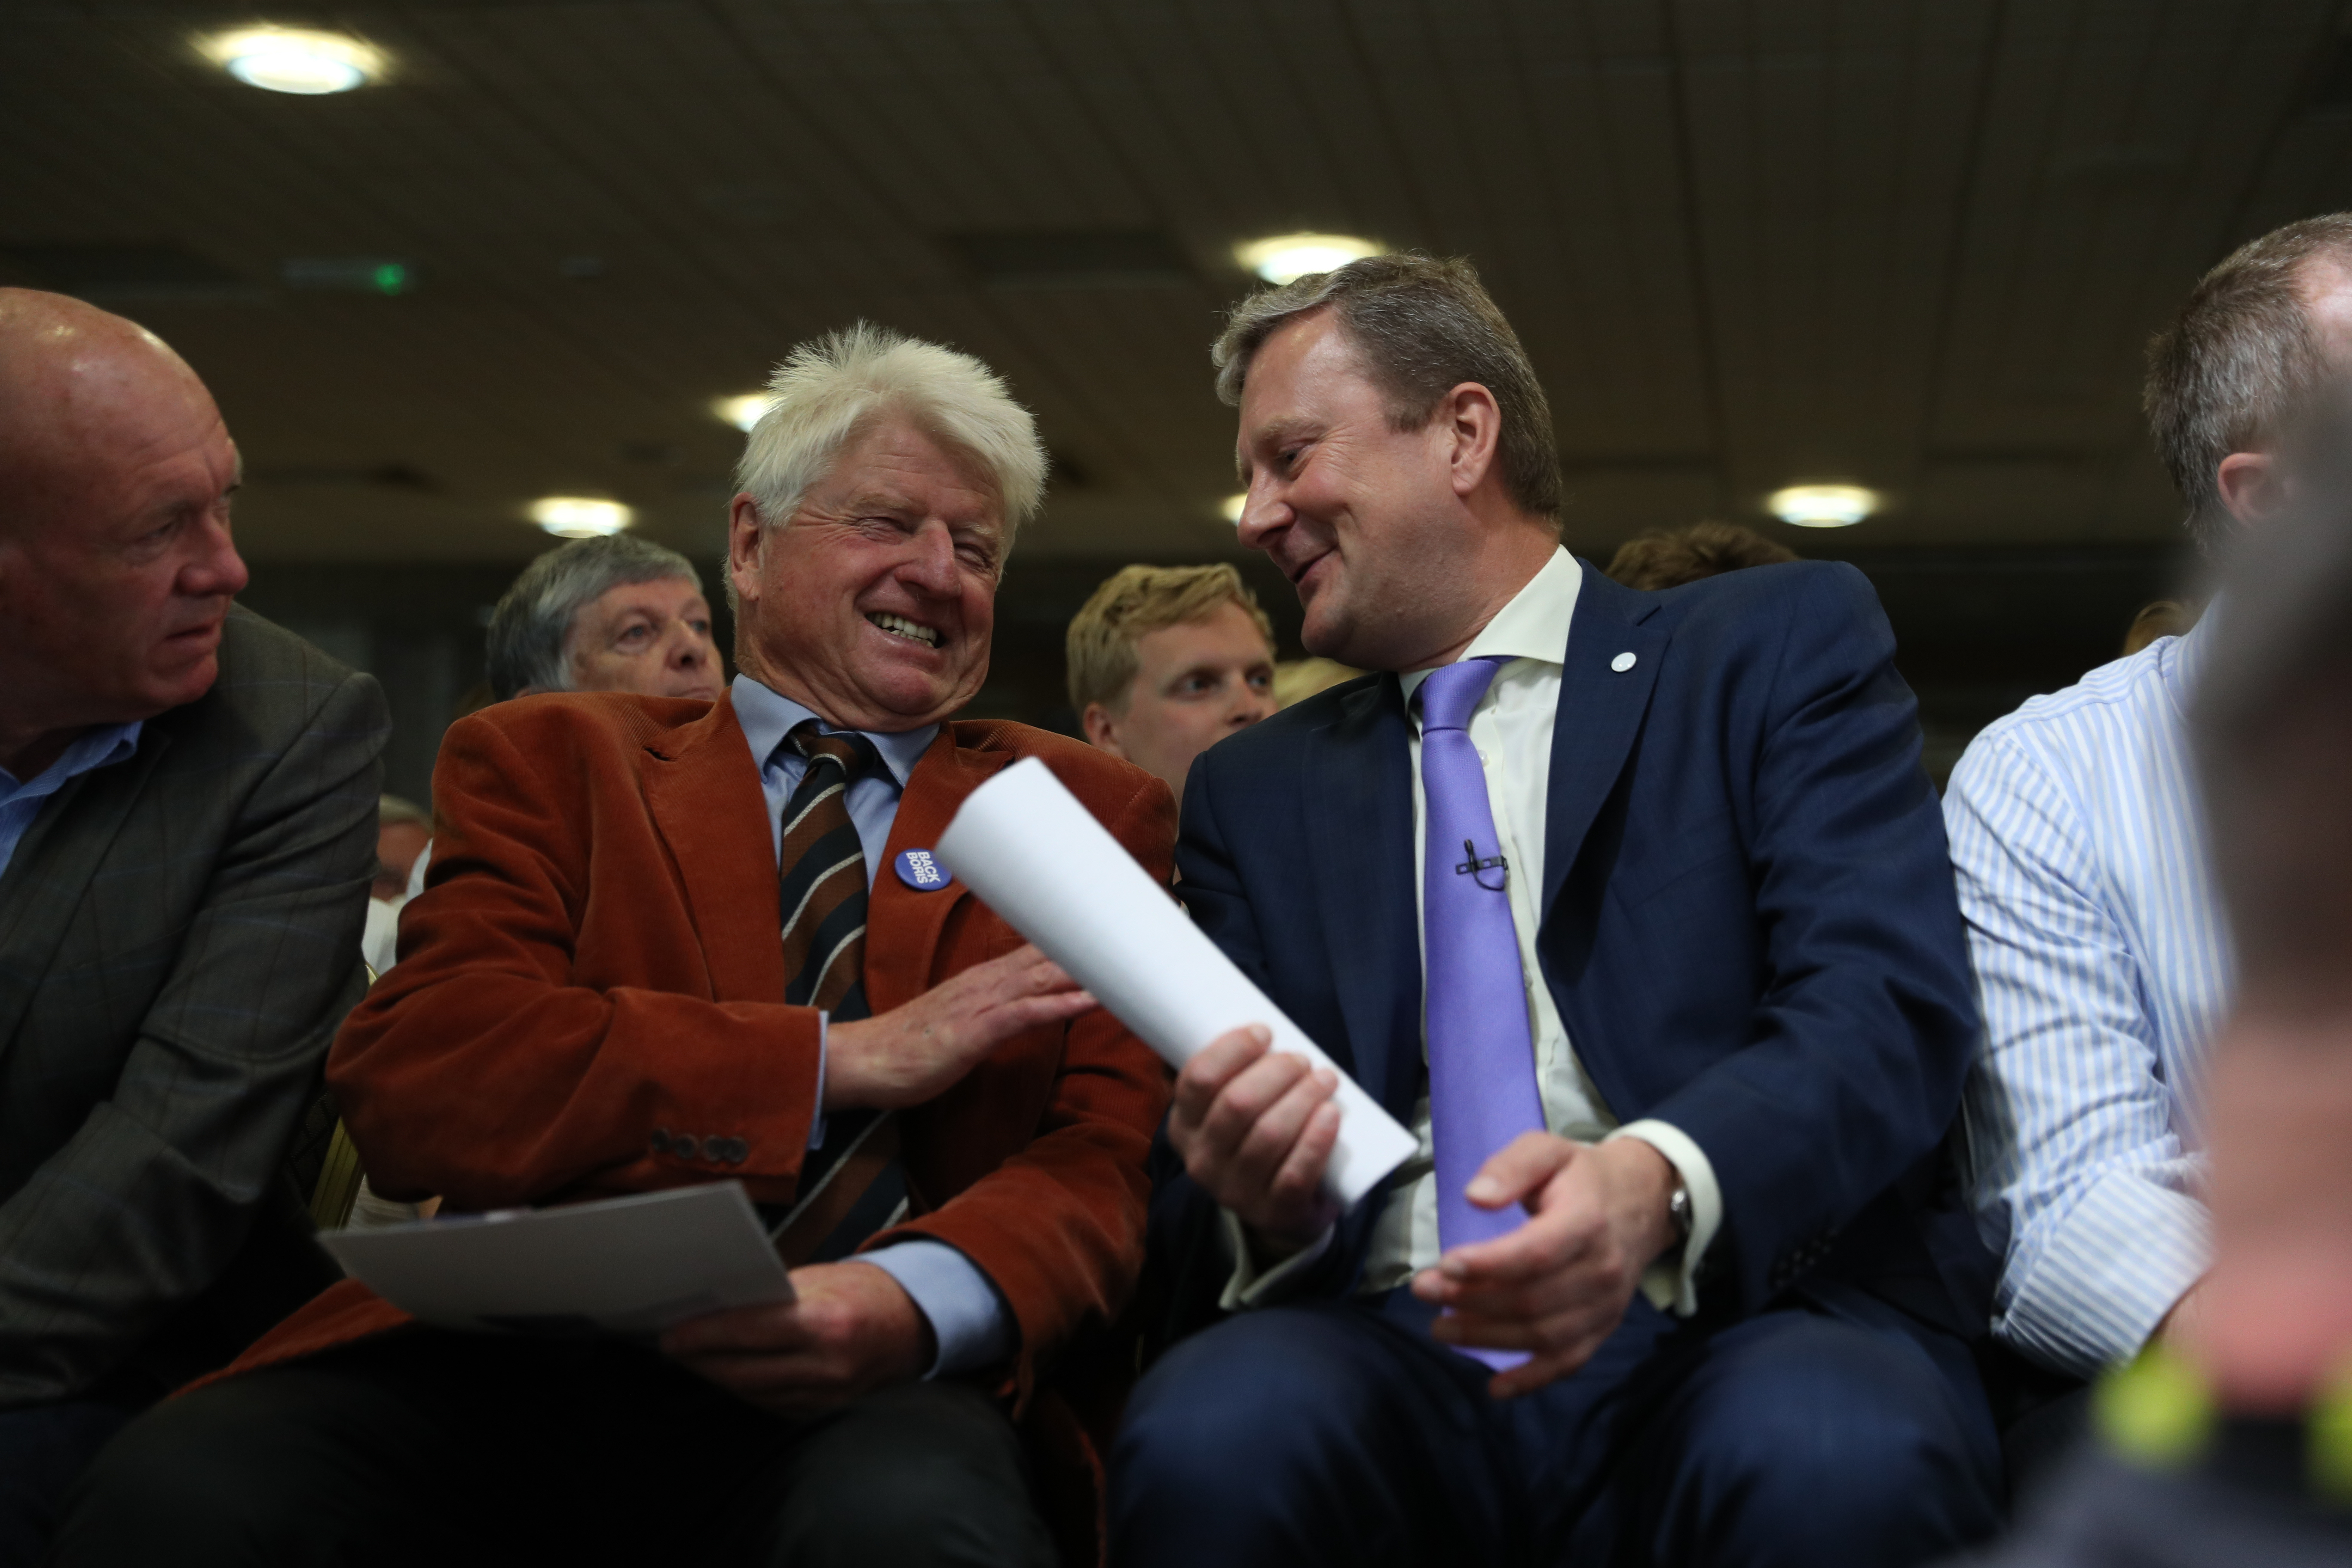 Conservative party leadership contender Boris Johnson's father Stanley Johnson (left) watching his son speak in Exeter during a Tory leadership hustings.